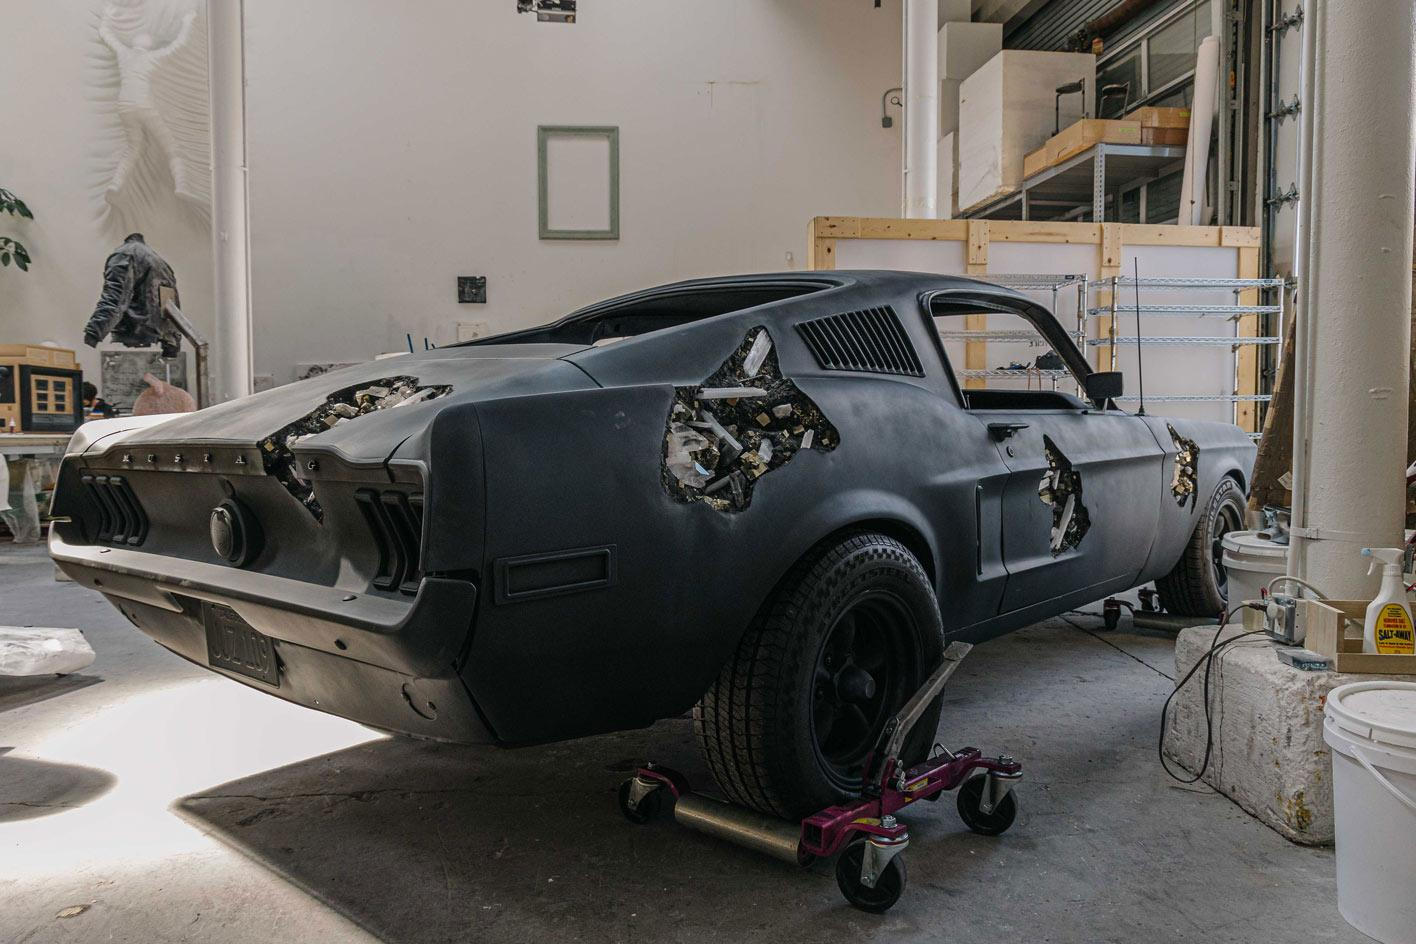 Daniel Arsham's sculpture of a black Ford Mustang